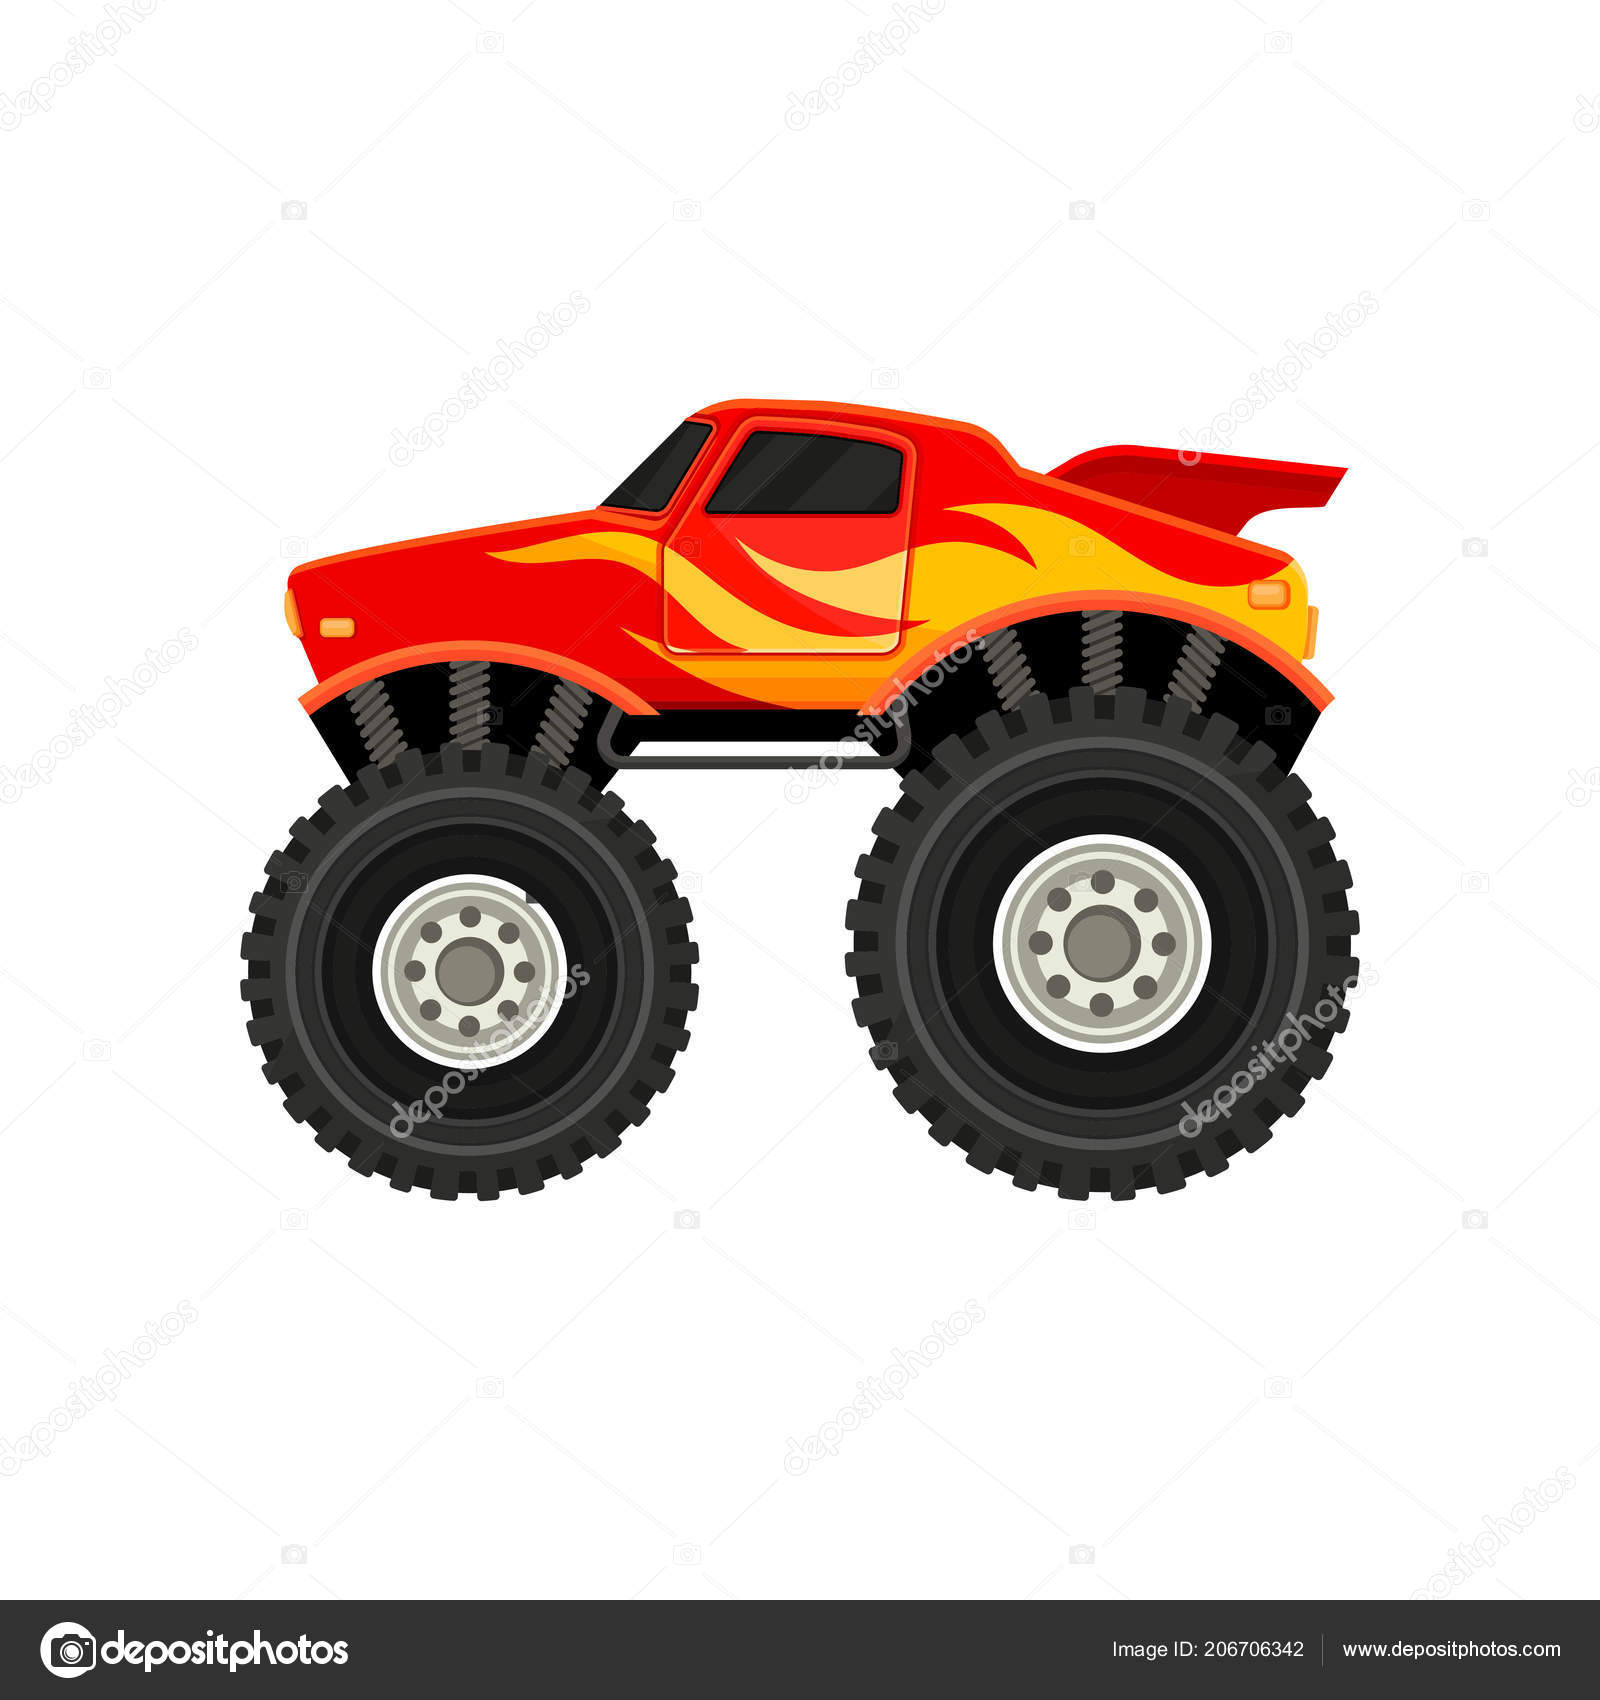 Flat vector icon of red monster truck with yellow orange flame decal car with